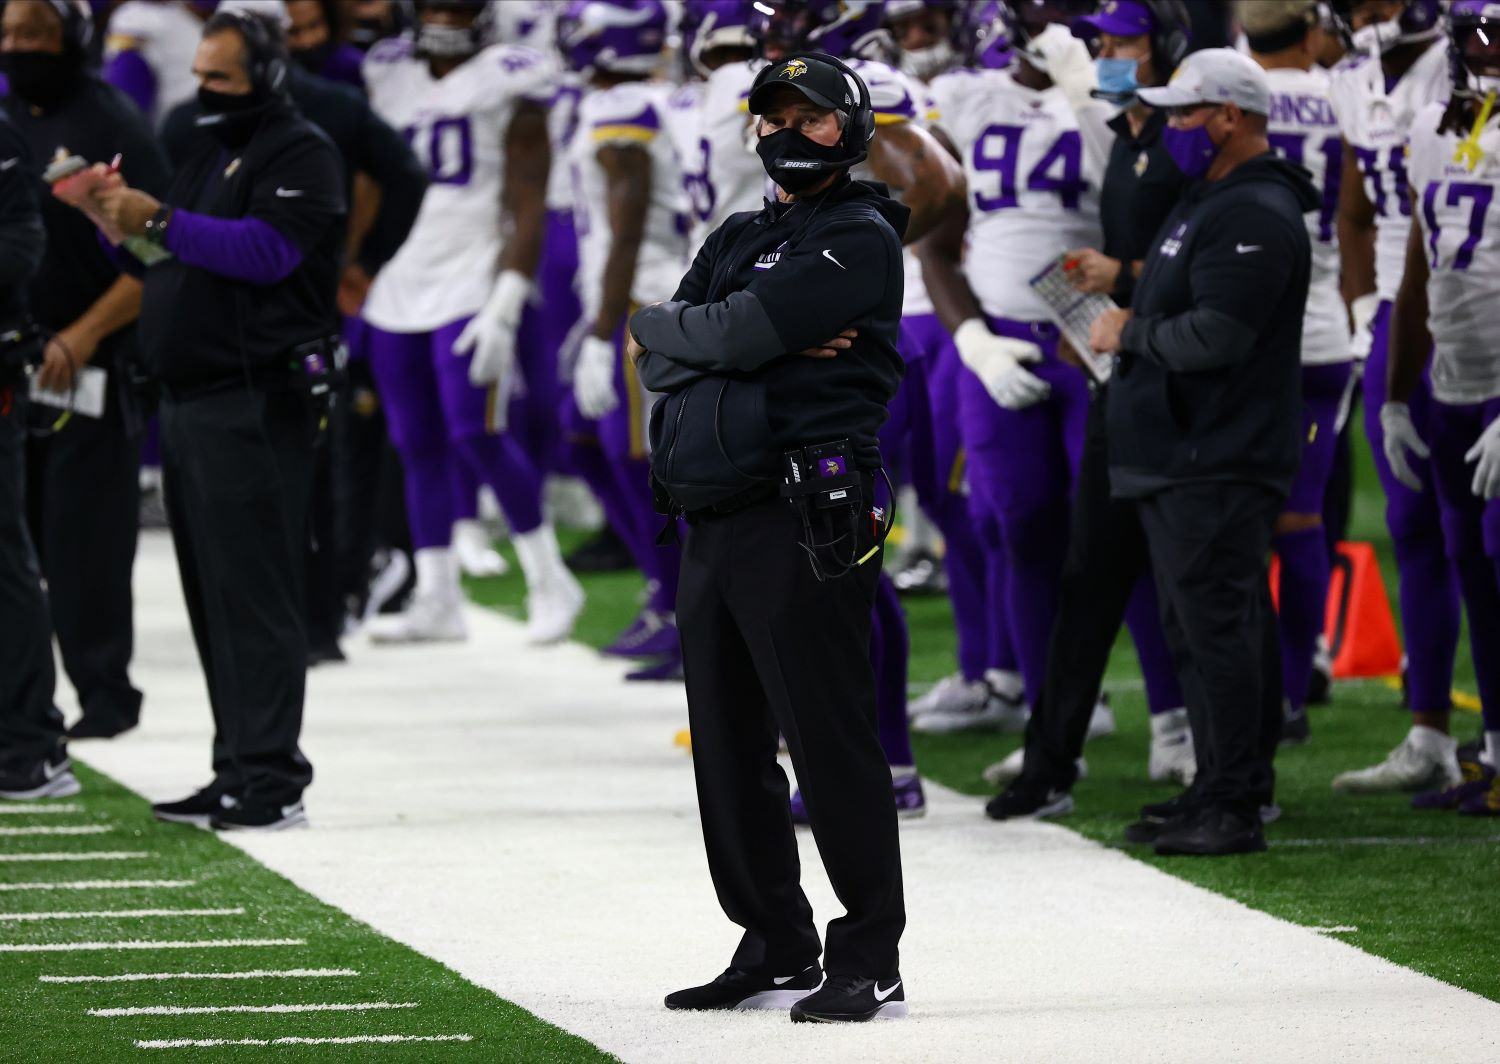 Mike Zimmer Just Suffered a Massive Setback to Saving His Job With the Minnesota Vikings